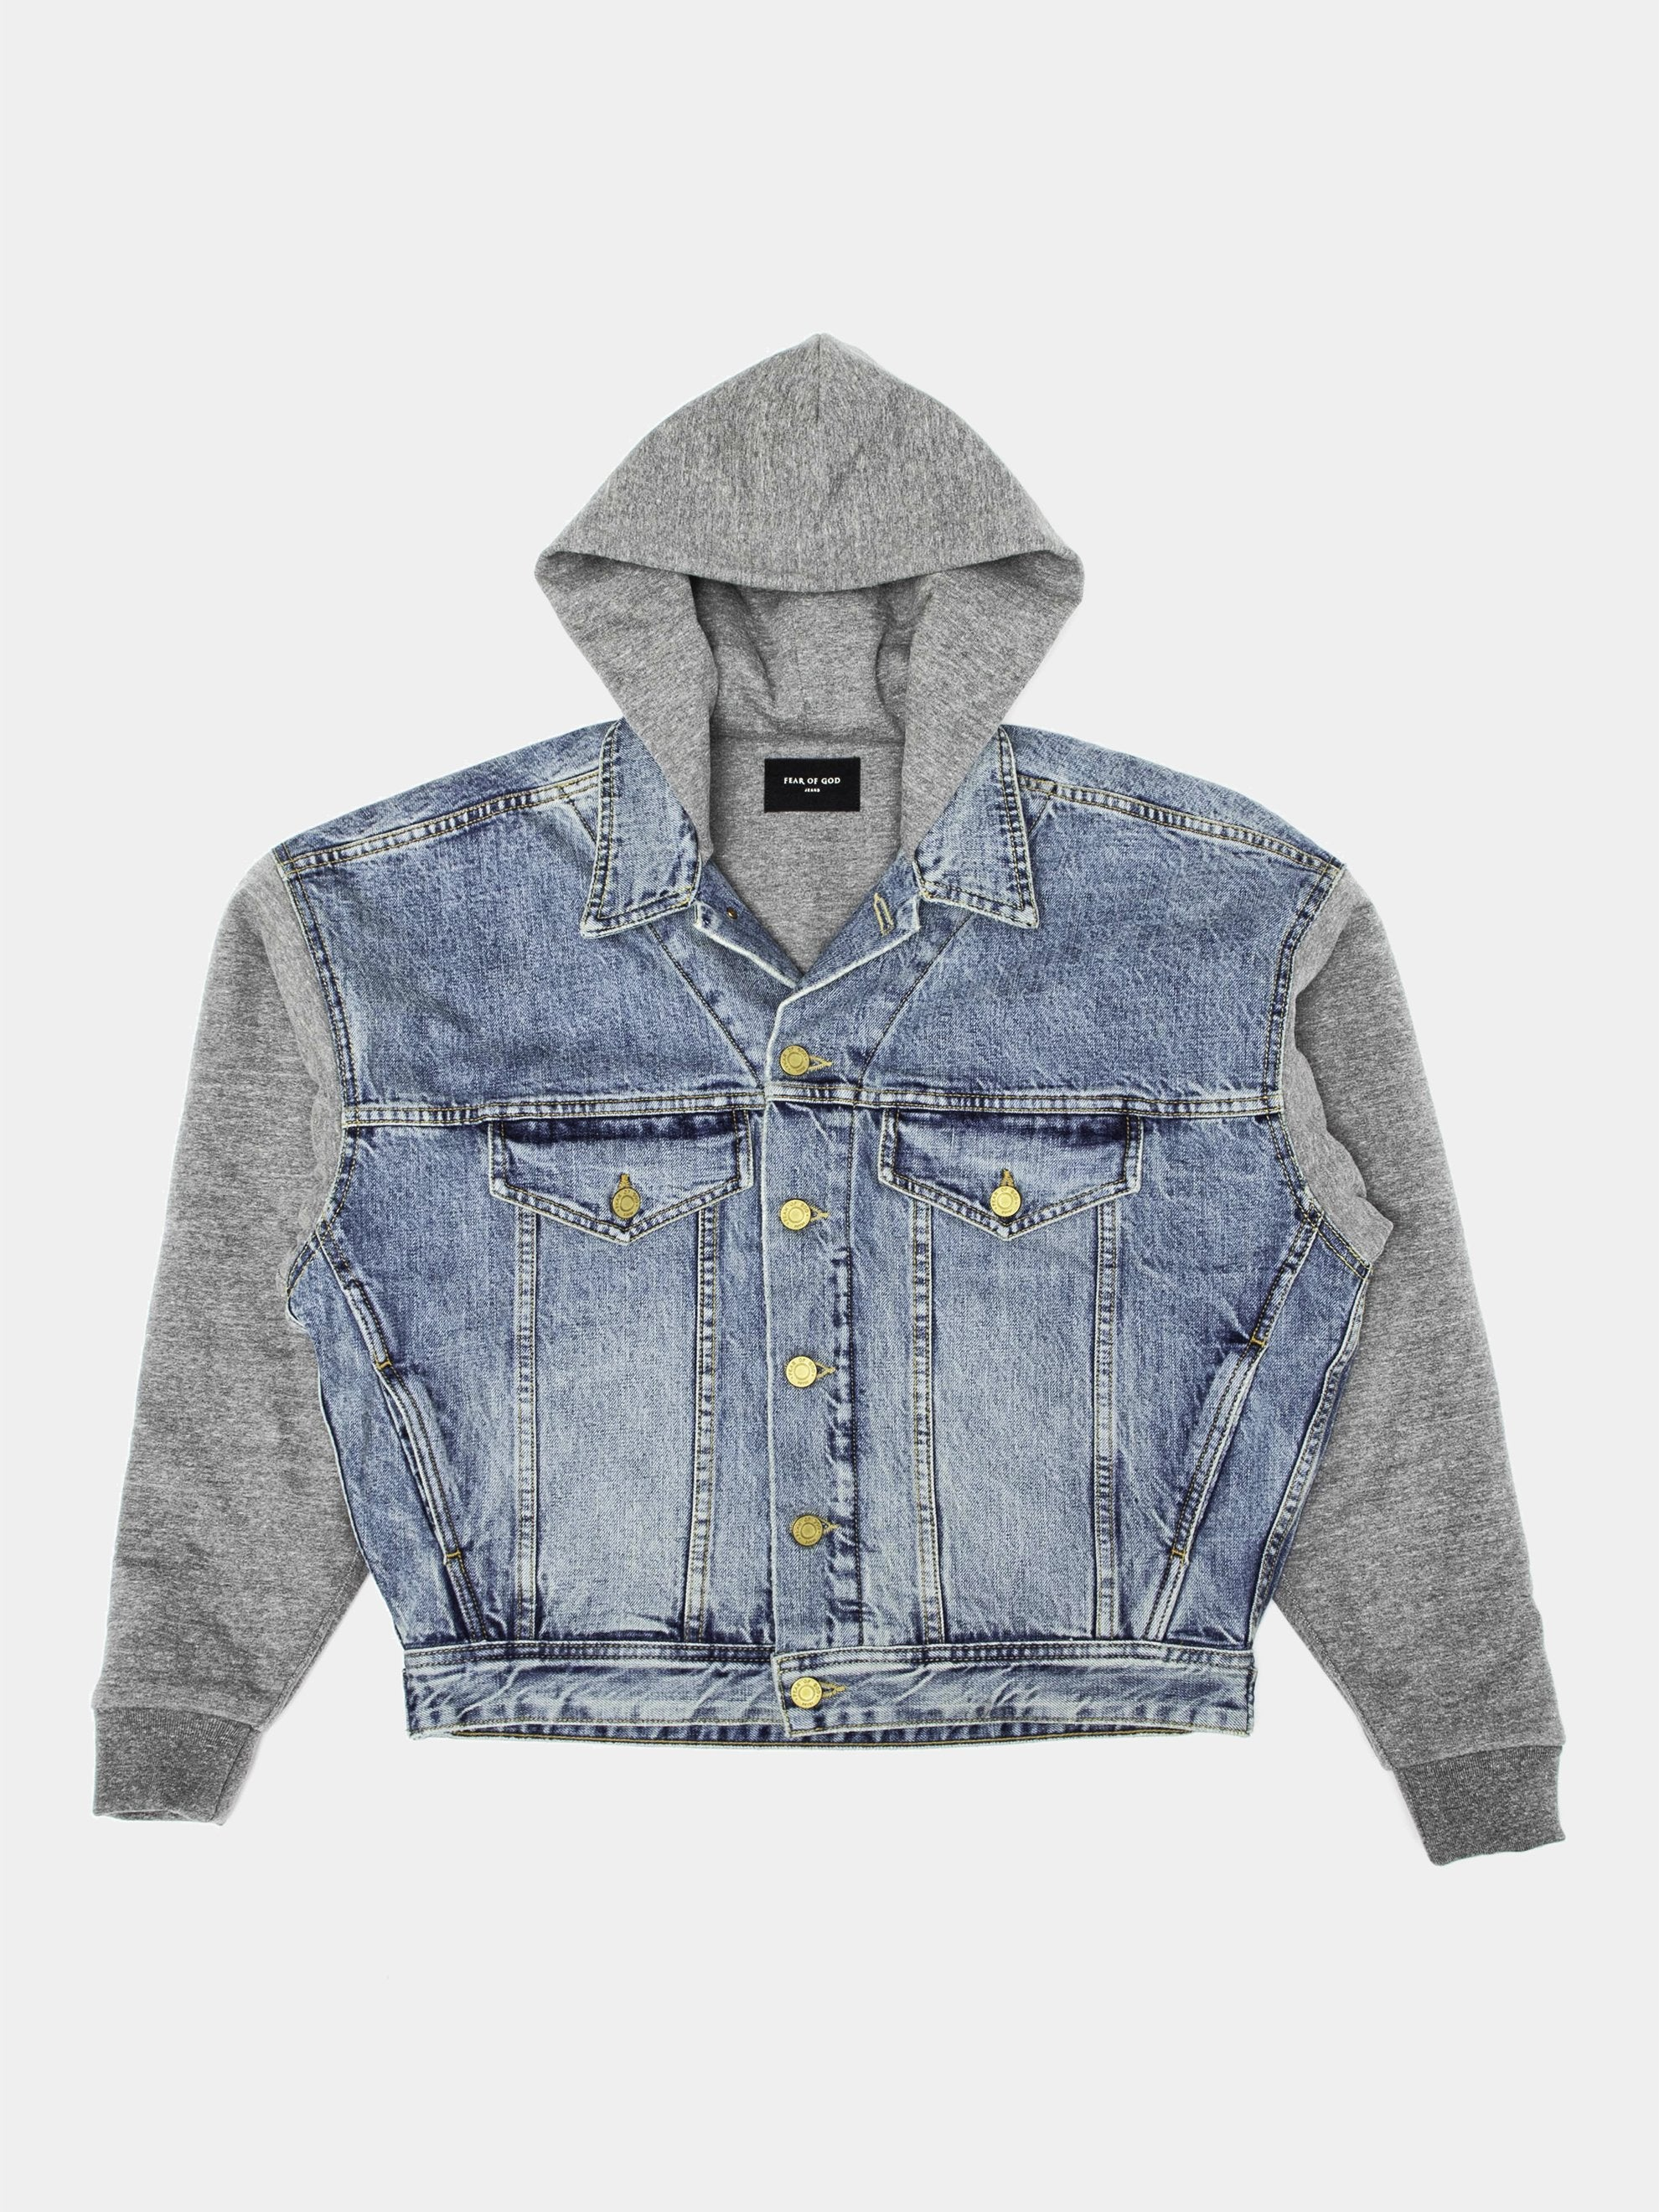 Selvedge Denim Trucker Jacket (French Terry Sleeves)